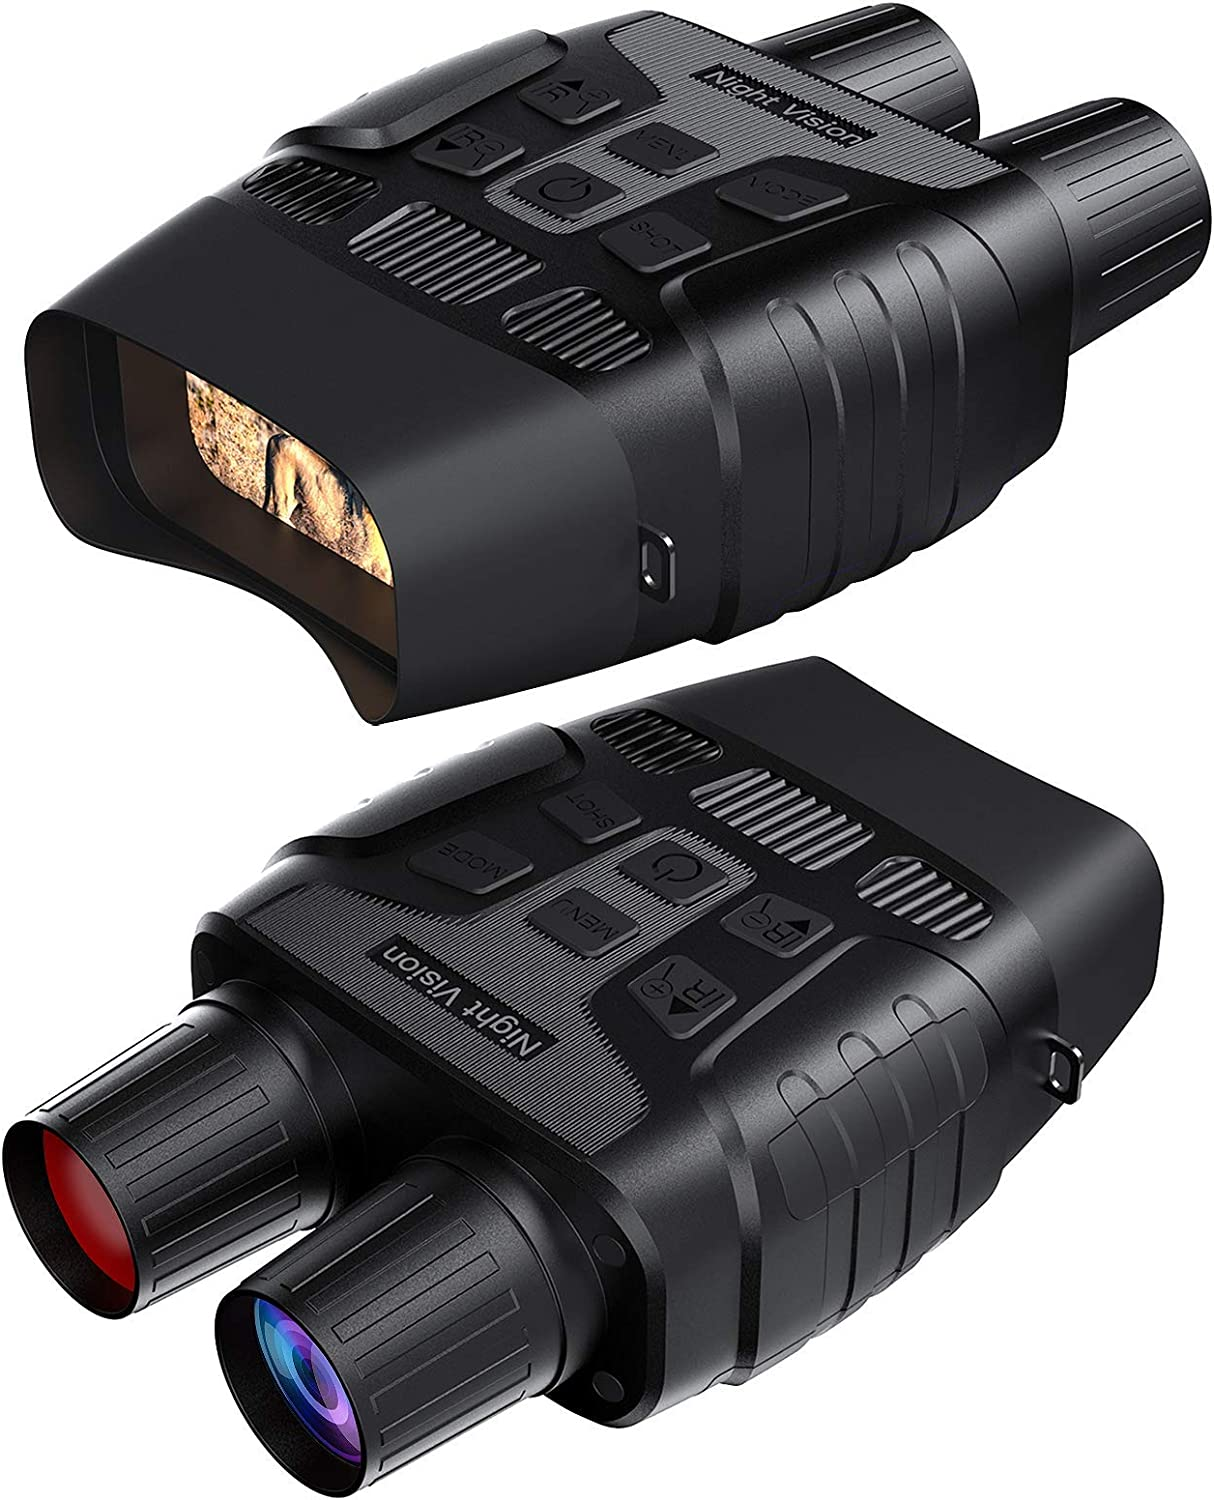 GTHUNDER Digital Night Vision Goggles